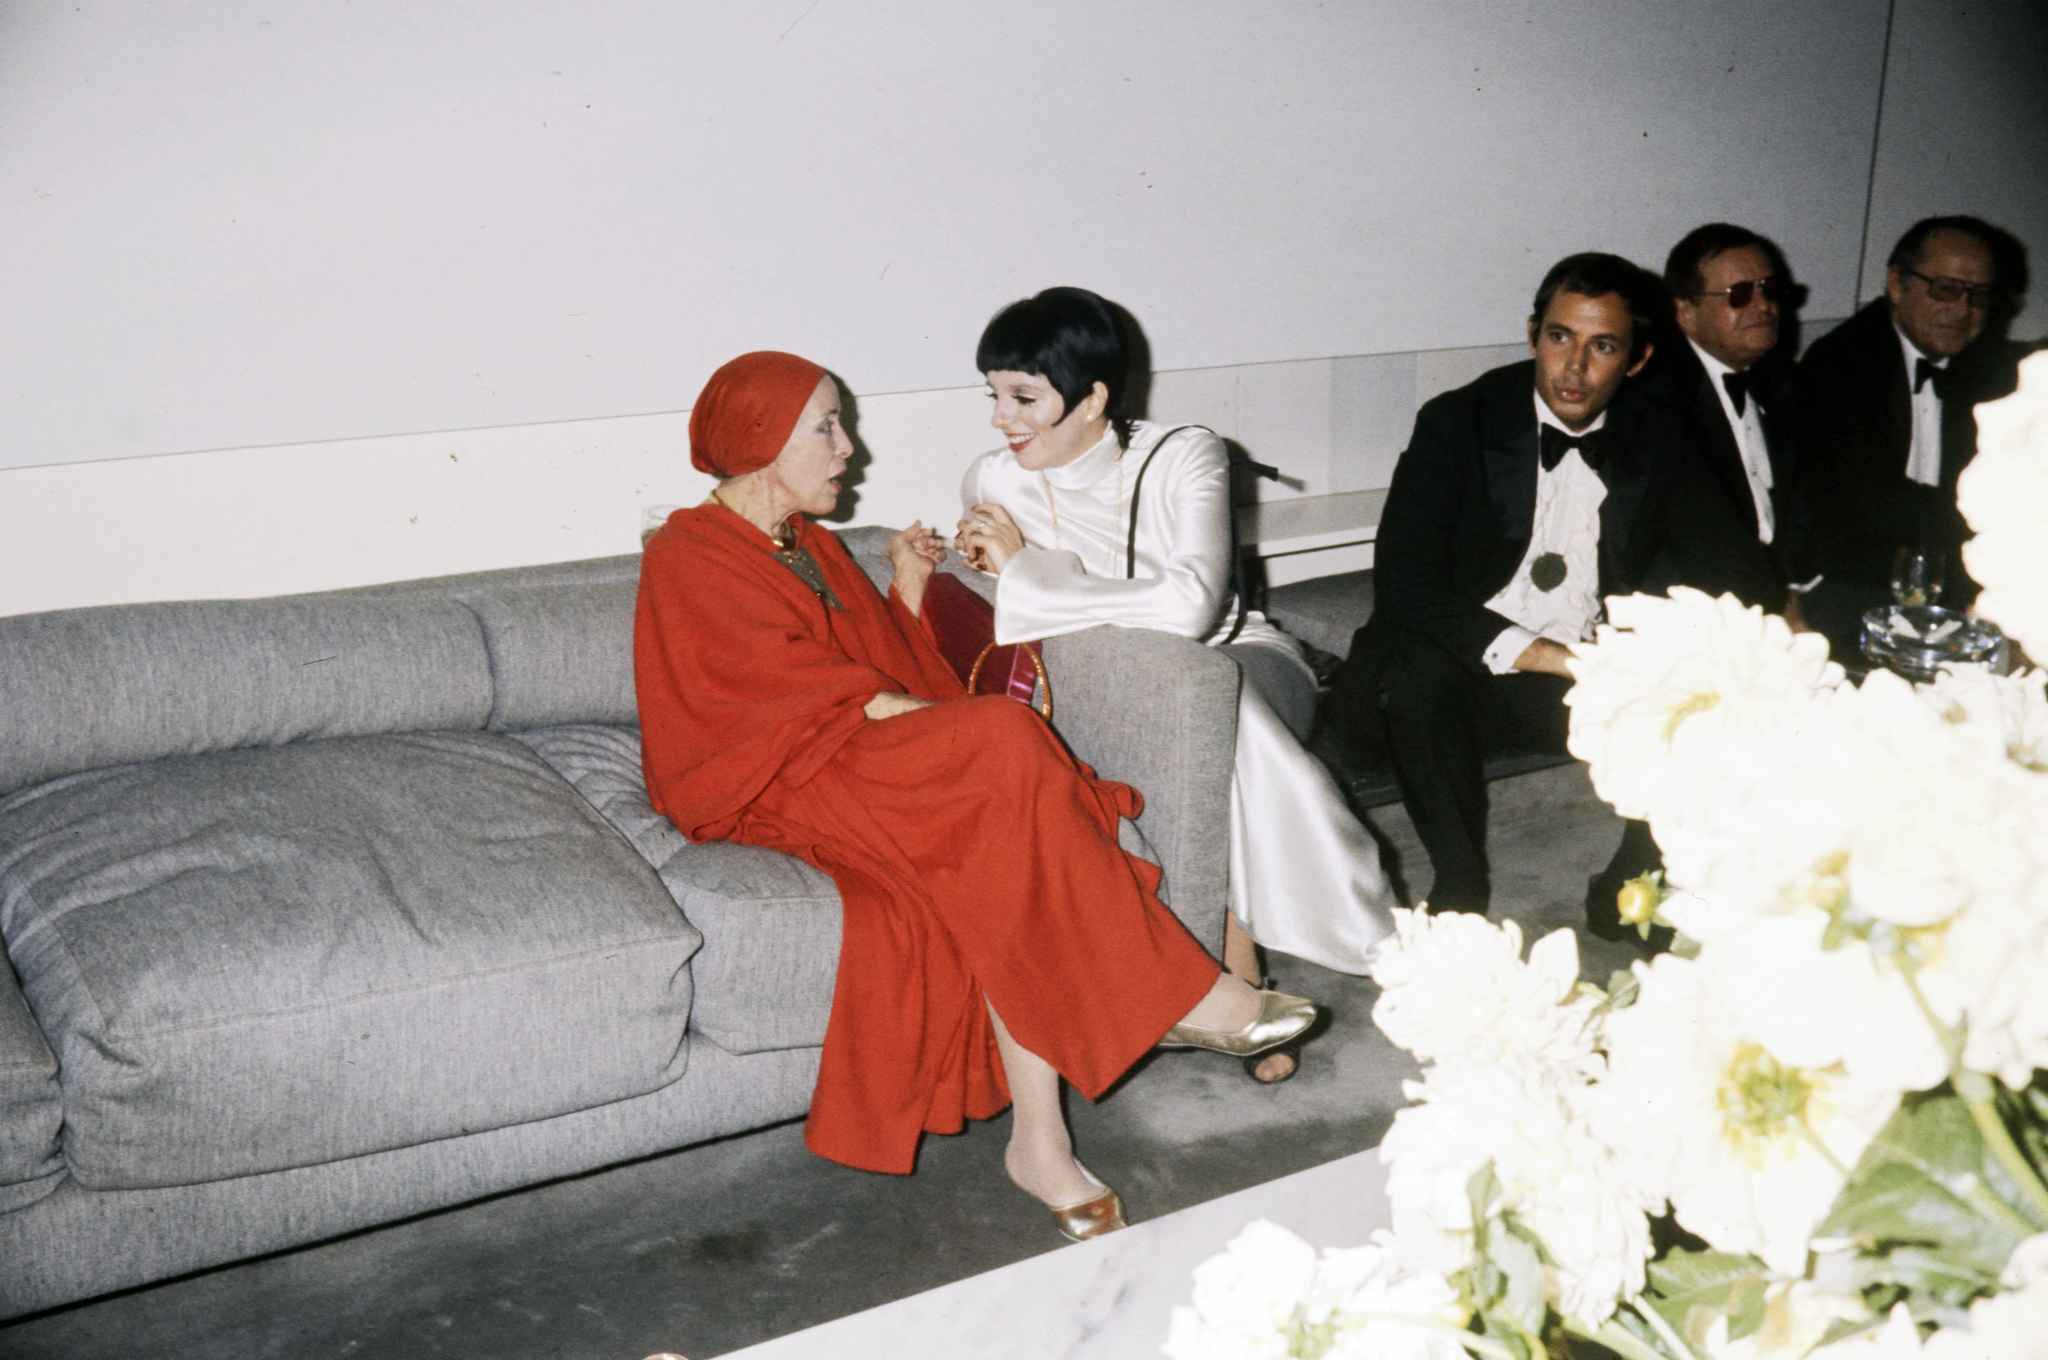 Martha Graham and Liza Minelli attend her wedding anniversary party at Roy Halston's New York home on September 15, 1975.